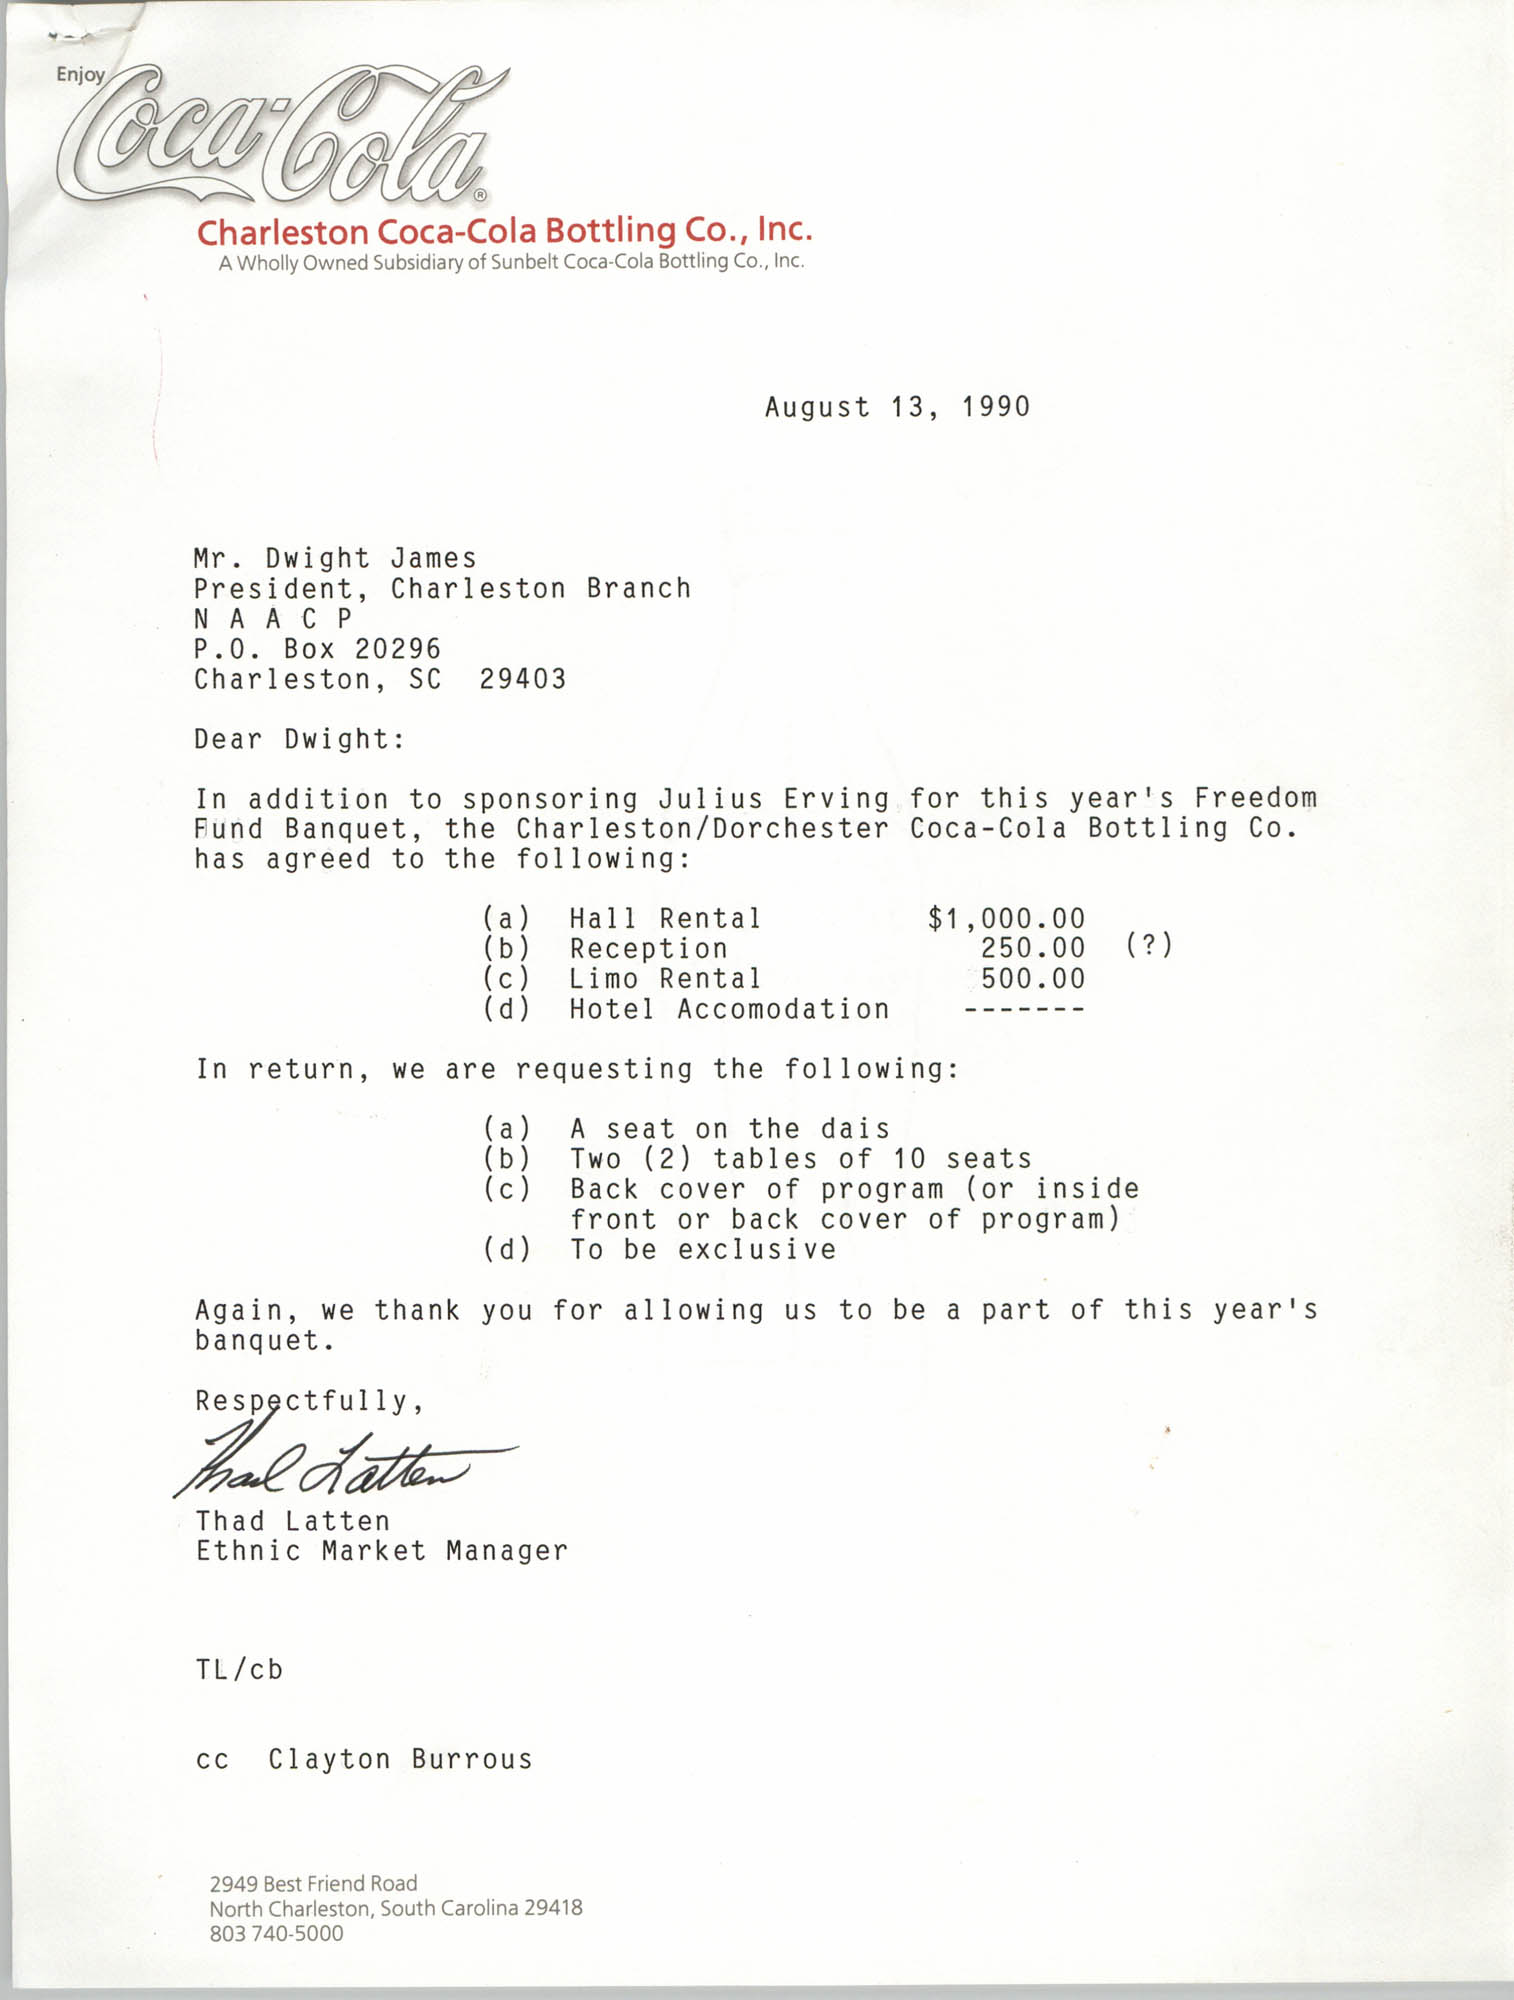 Letter from Thad Latten to Dwight James, August 13, 1990